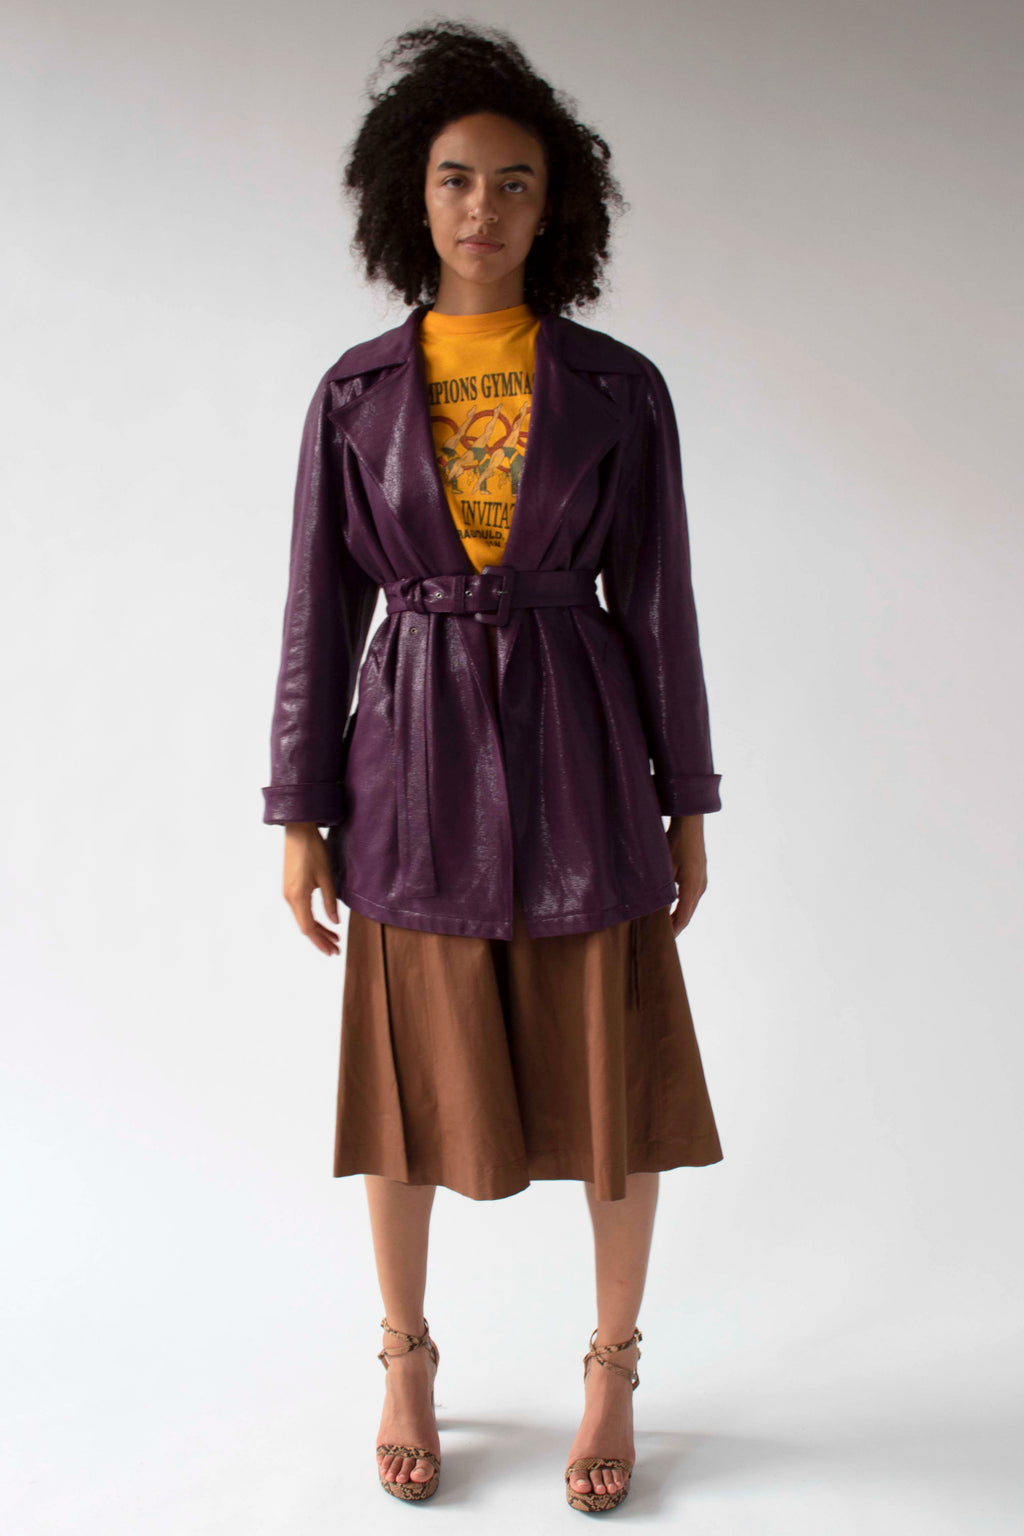 Gianni Versace metallic purple belted trench coat